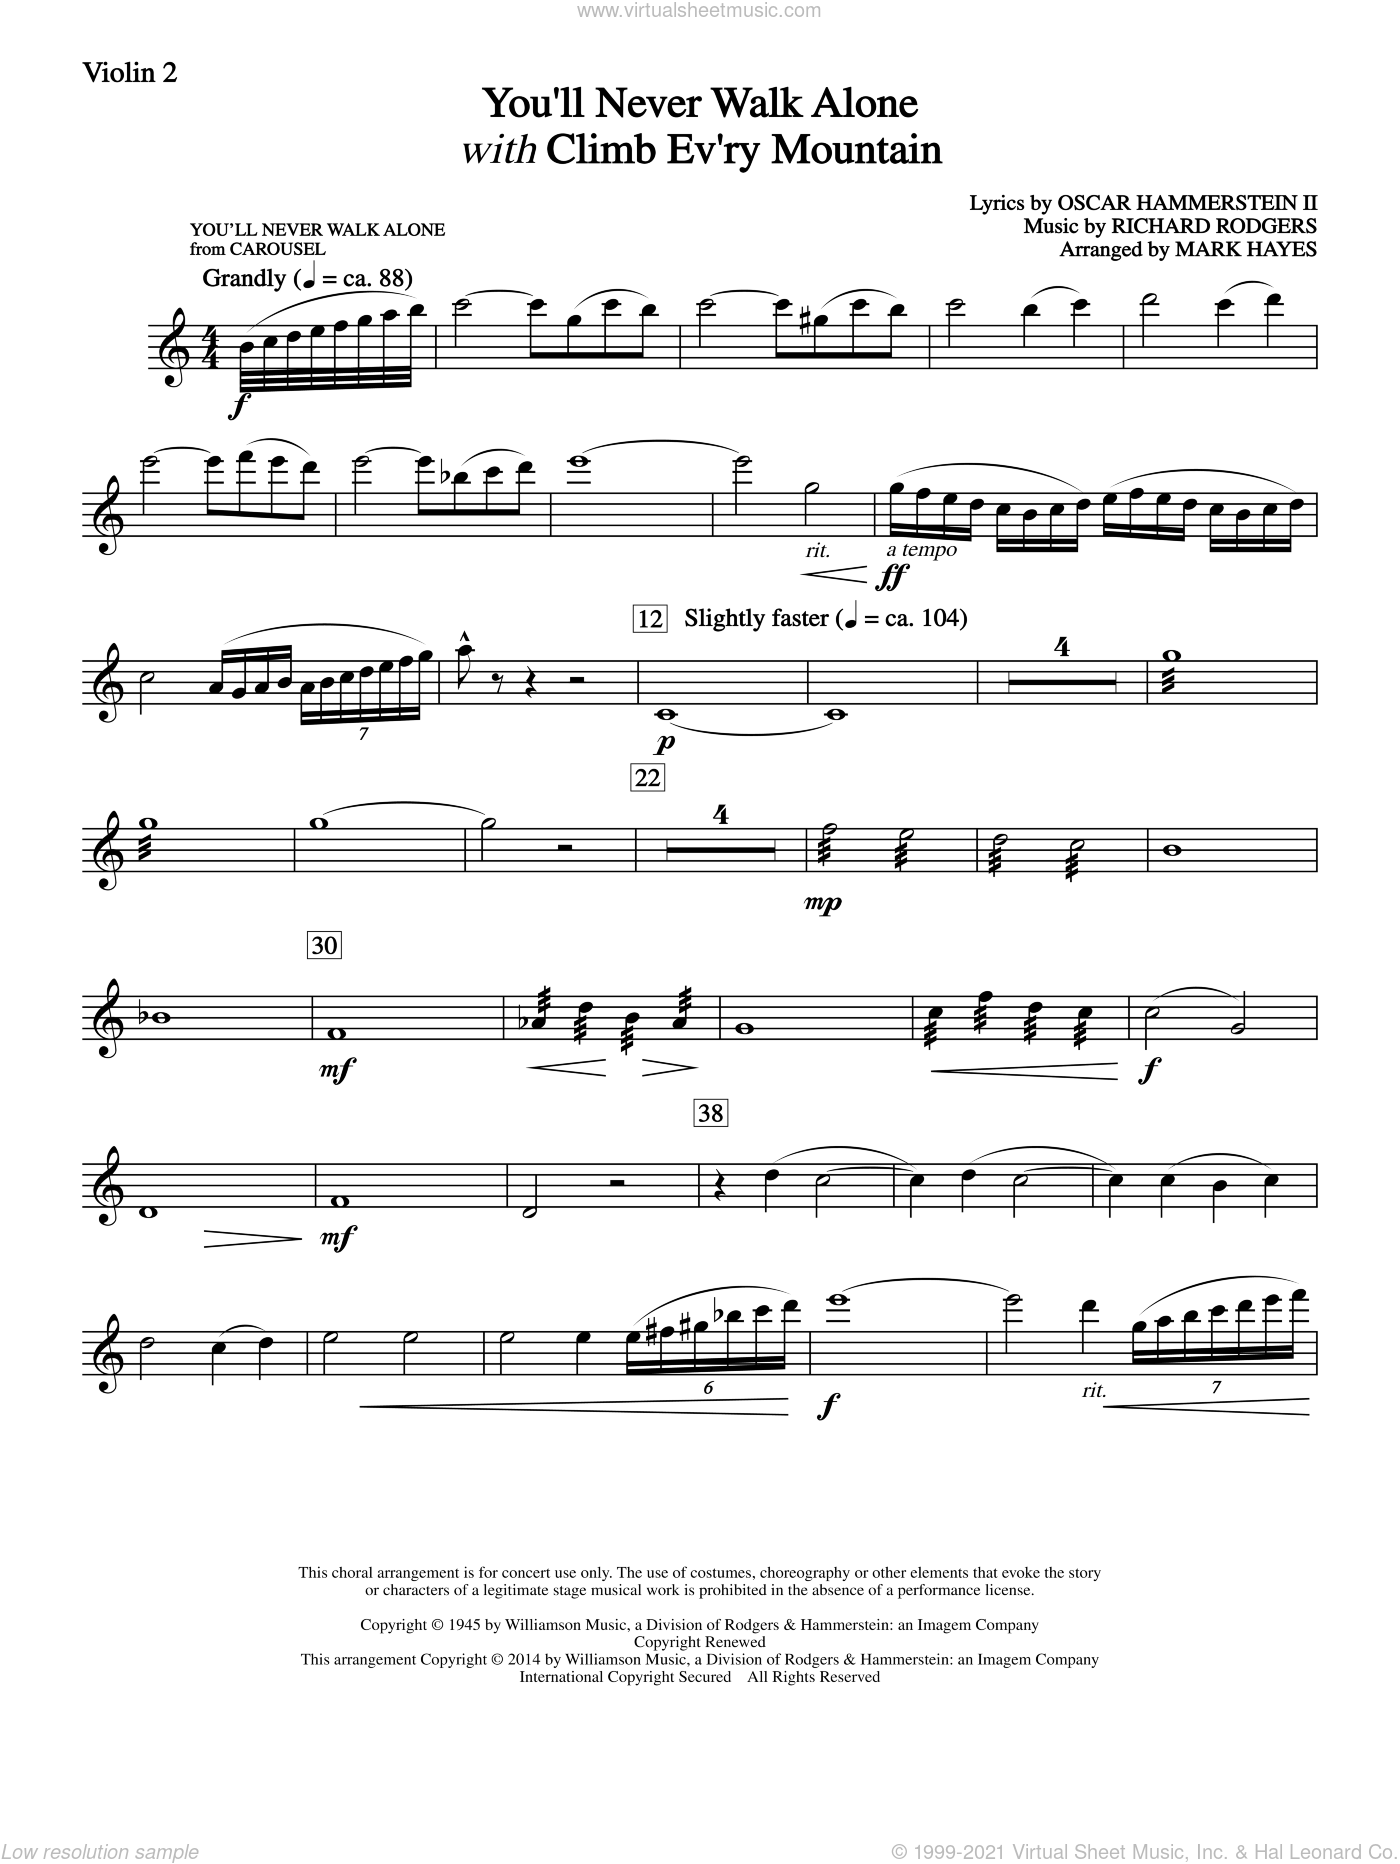 You'll Never Walk Alone (with Climb Every Mountain) sheet music for orchestra/band (violin 2) by Richard Rodgers, Margery McKay, Patricia Neway, Tony Bennett, Mark Hayes and Oscar II Hammerstein, intermediate skill level